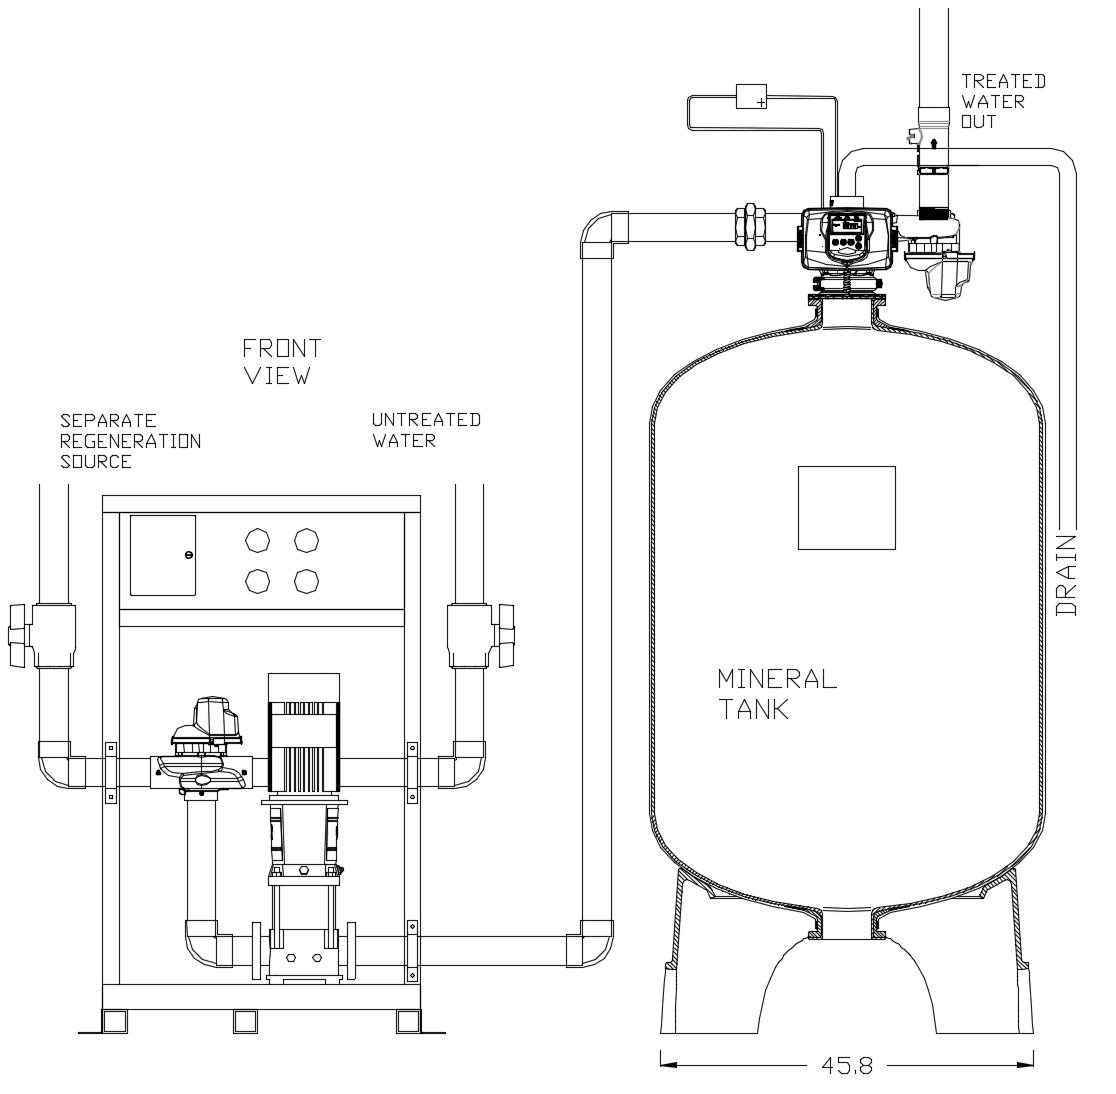 Simplex Cooling Tower Side Stream 5-Micron Filter System